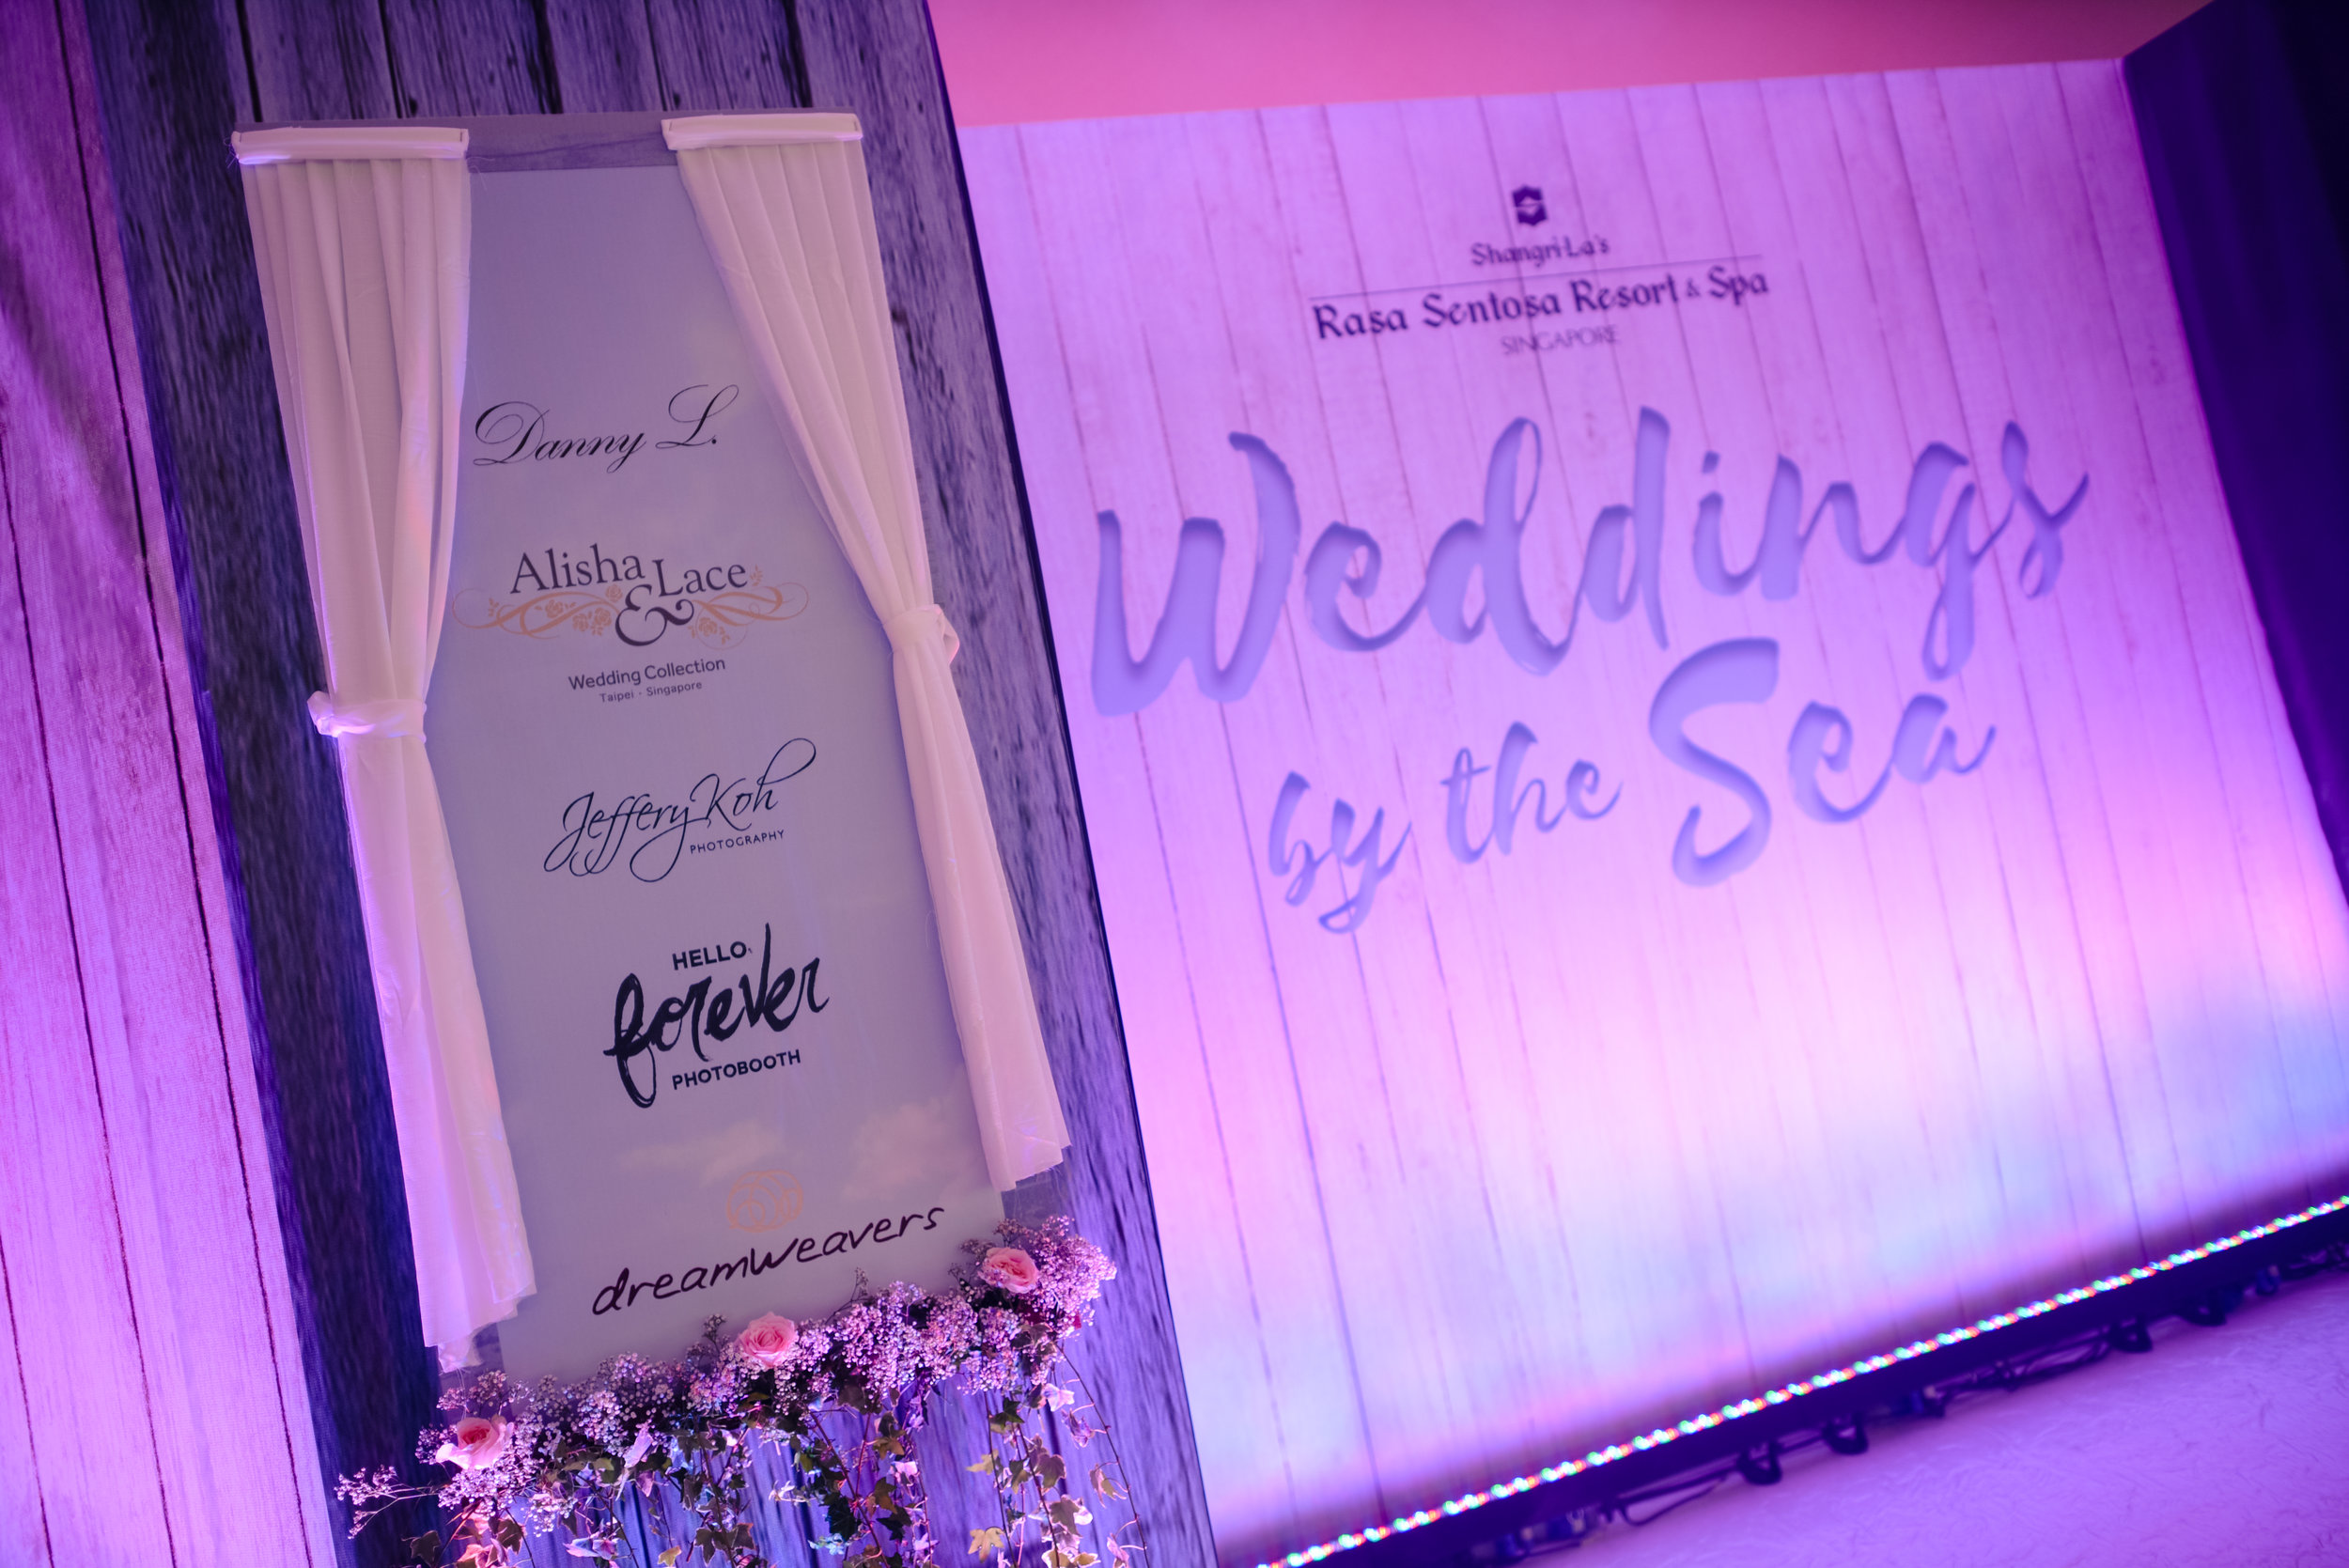 Shangri-La's  Rasa Sentosa  Resort Wedding Show 2016